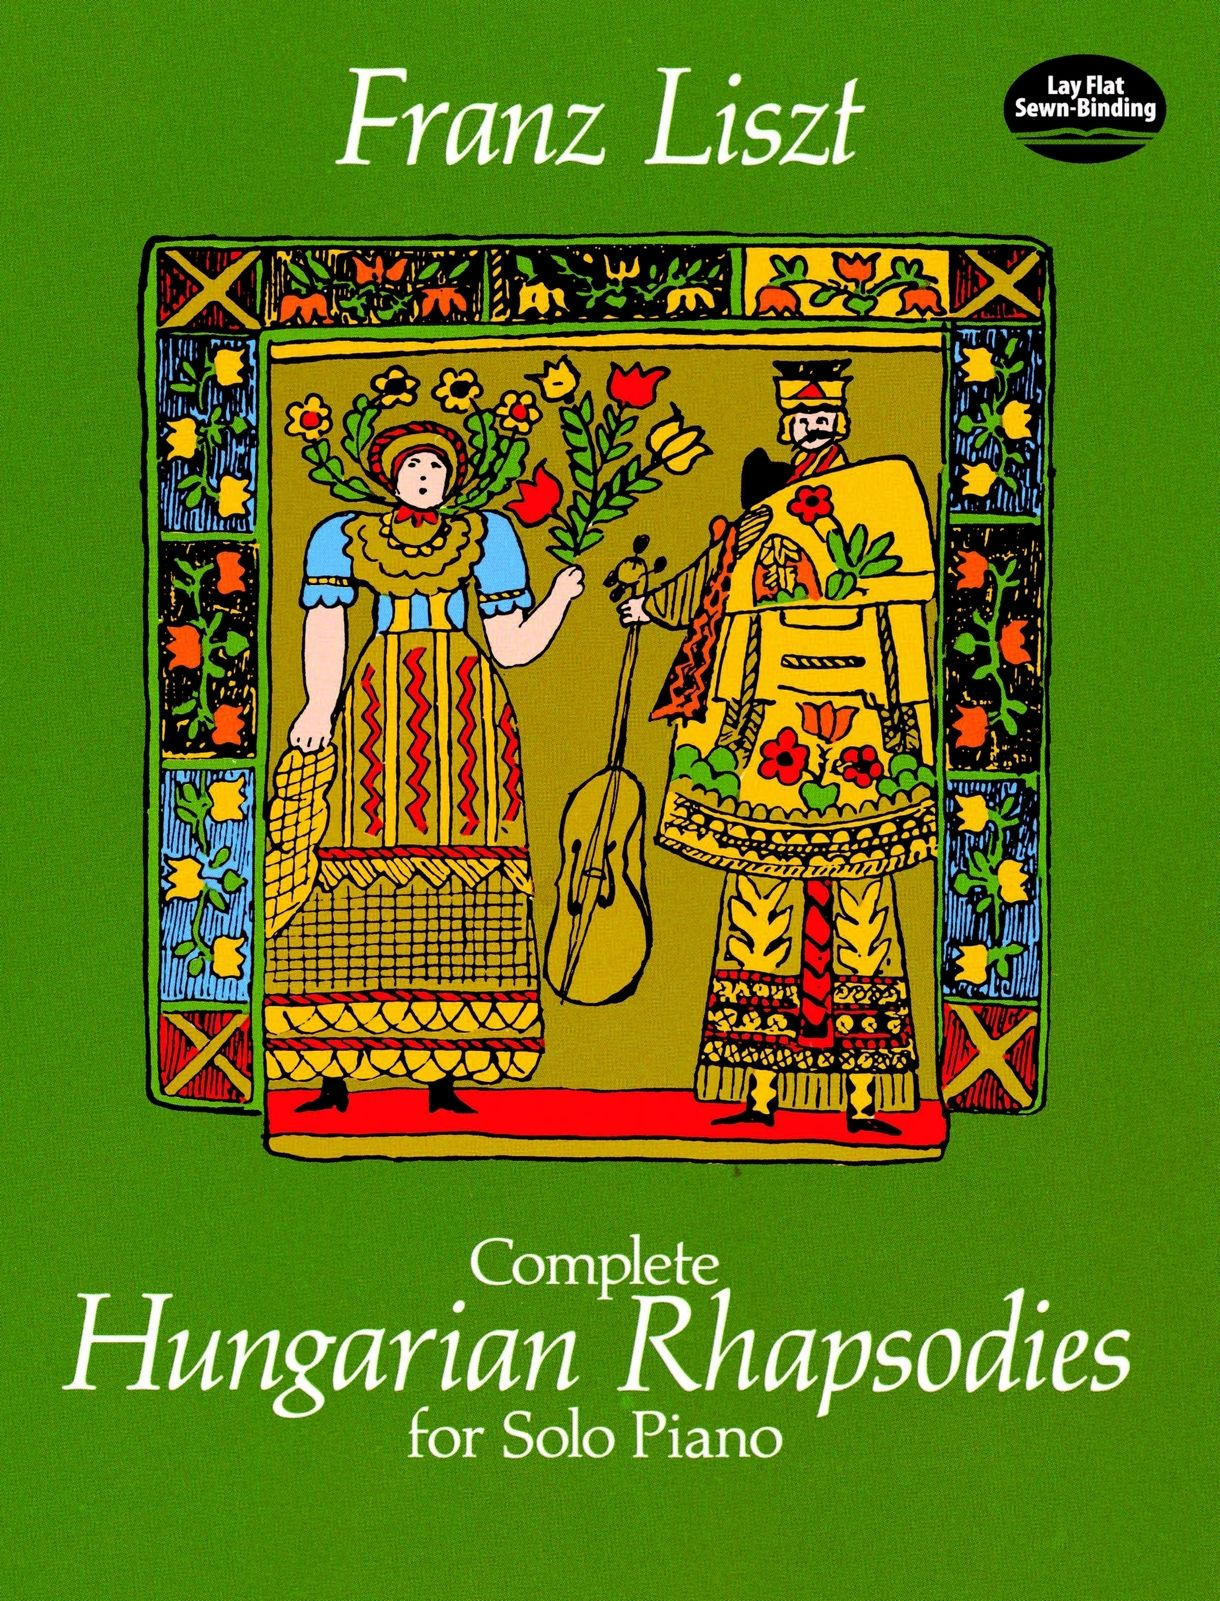 Complete Hungarian Rhapsodies for Solo Piano by Franz Liszt All 19  Rhapsodies reproduced directly from an authoritative Russian edition.